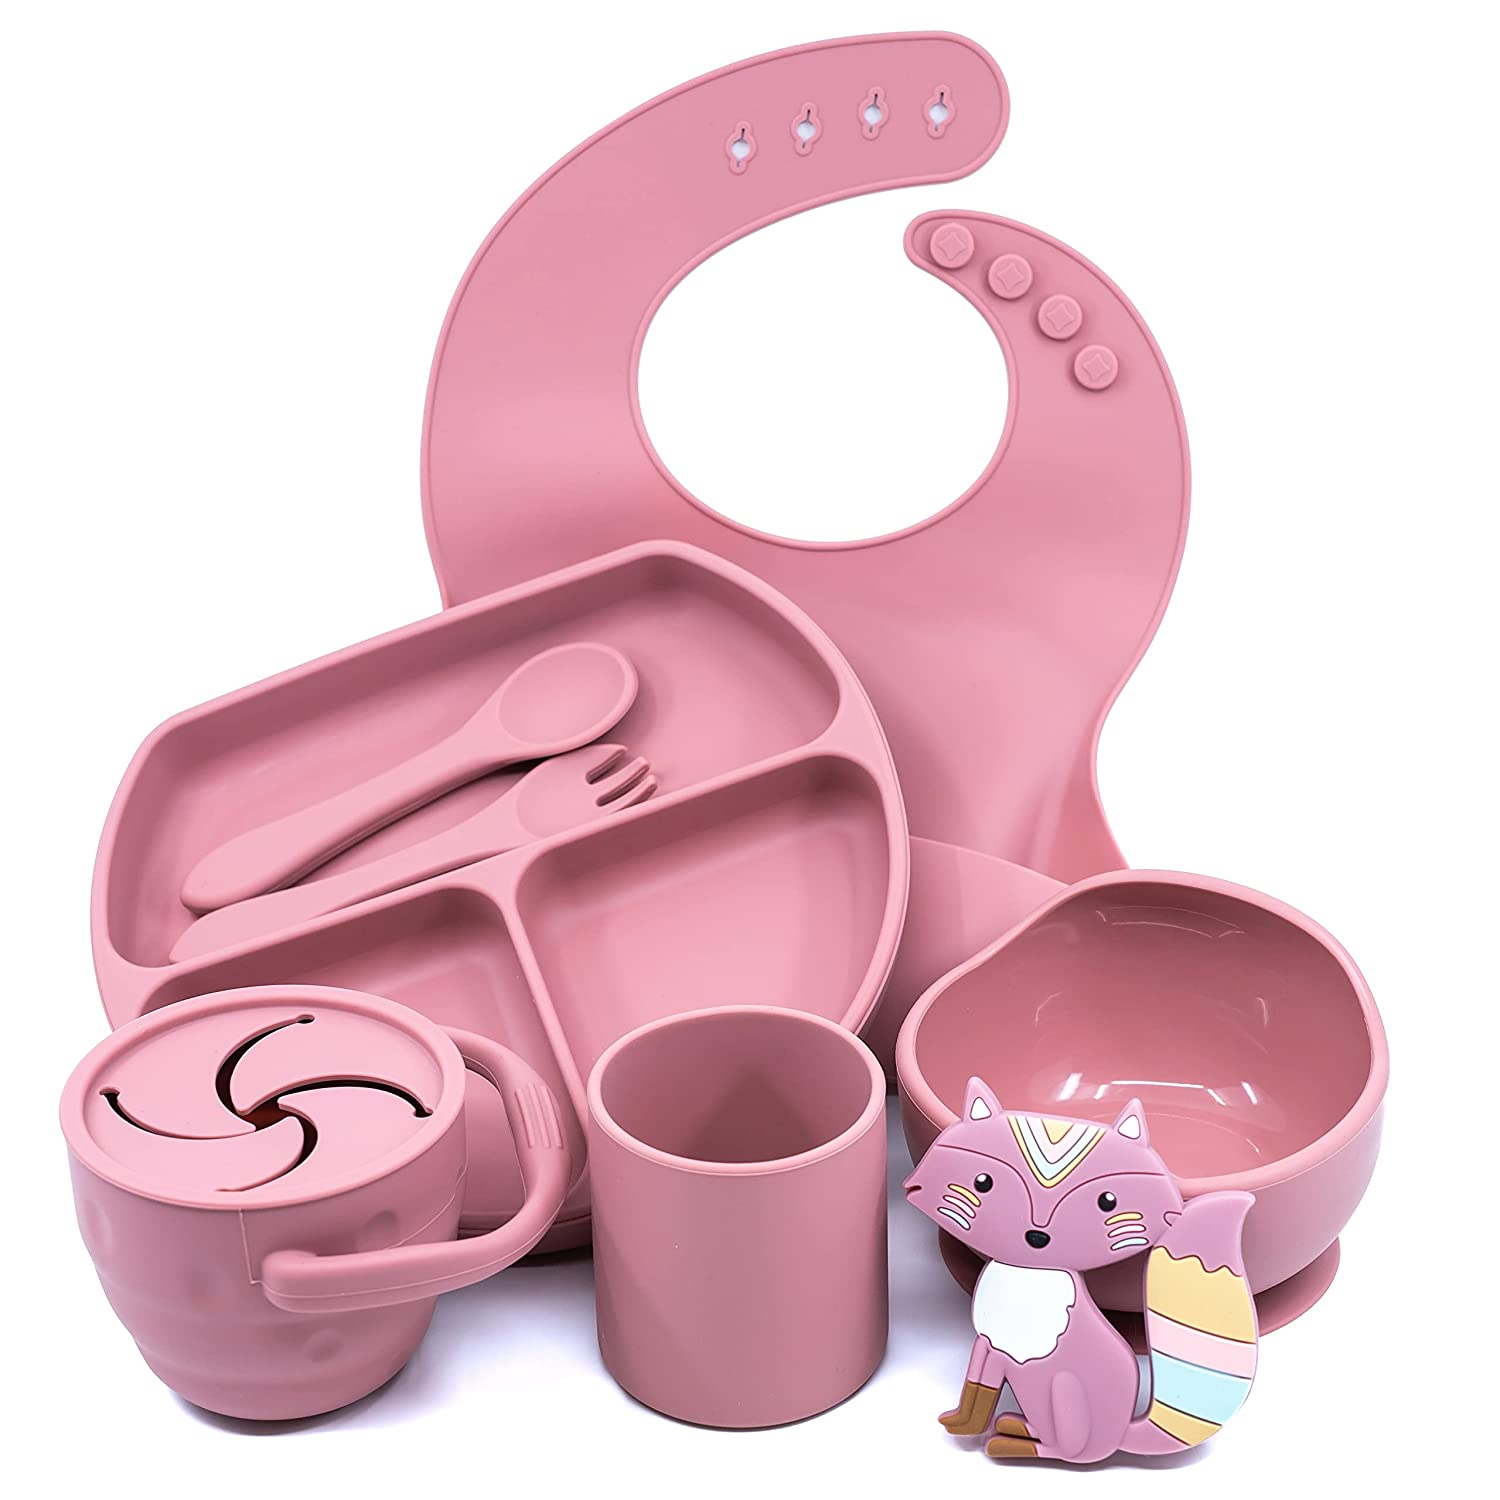 Muqee Peeko Rose Pink Baby Feeding Supplies - Toddler Self-Eating Plates Set with Utensils - Divided Plate, Suction Food Bowl with Spoon, Fork - Silicone Bib, Teething Toy, Snack Cup - (10 Piece Set)